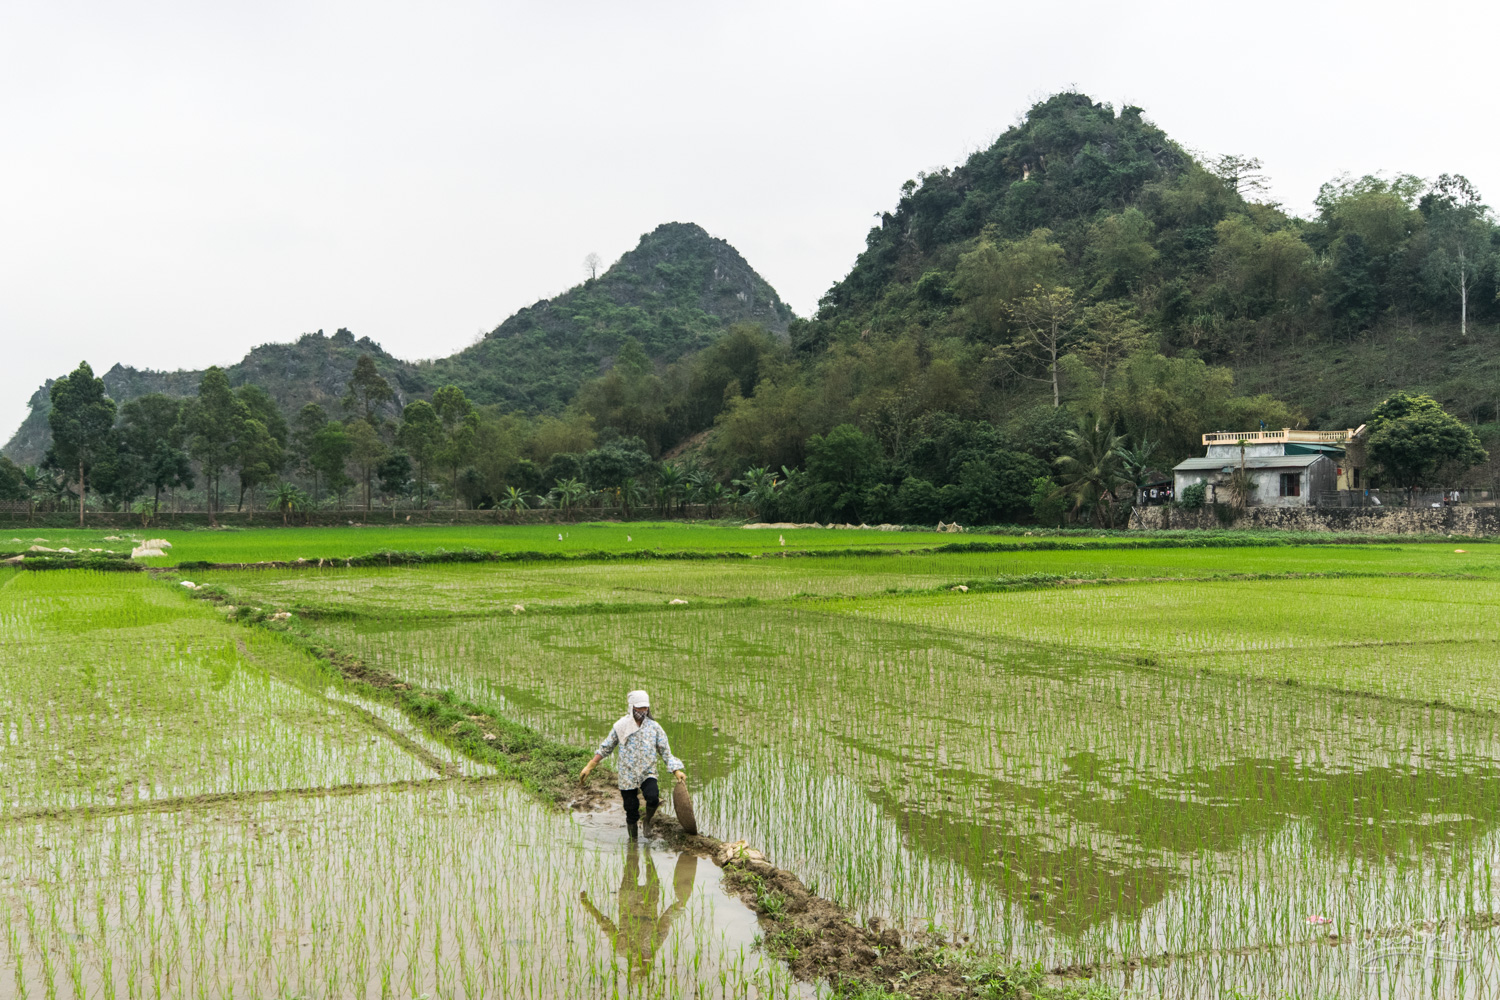 Ricefields in Ninh Binh